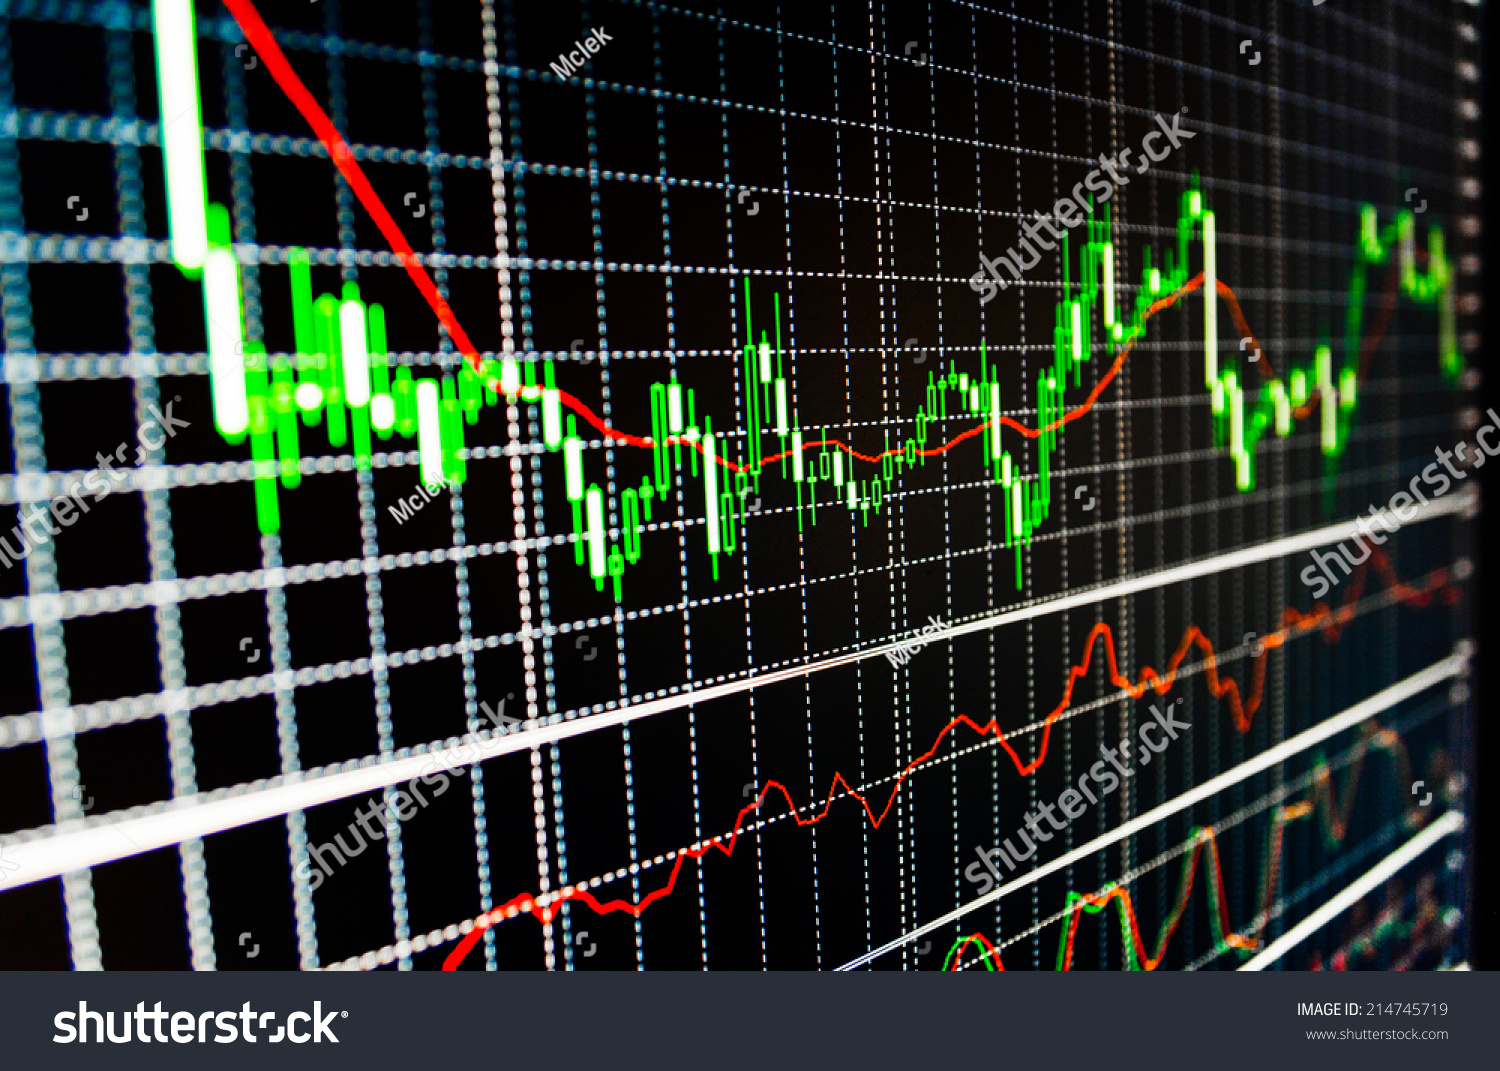 Forex live price quotes